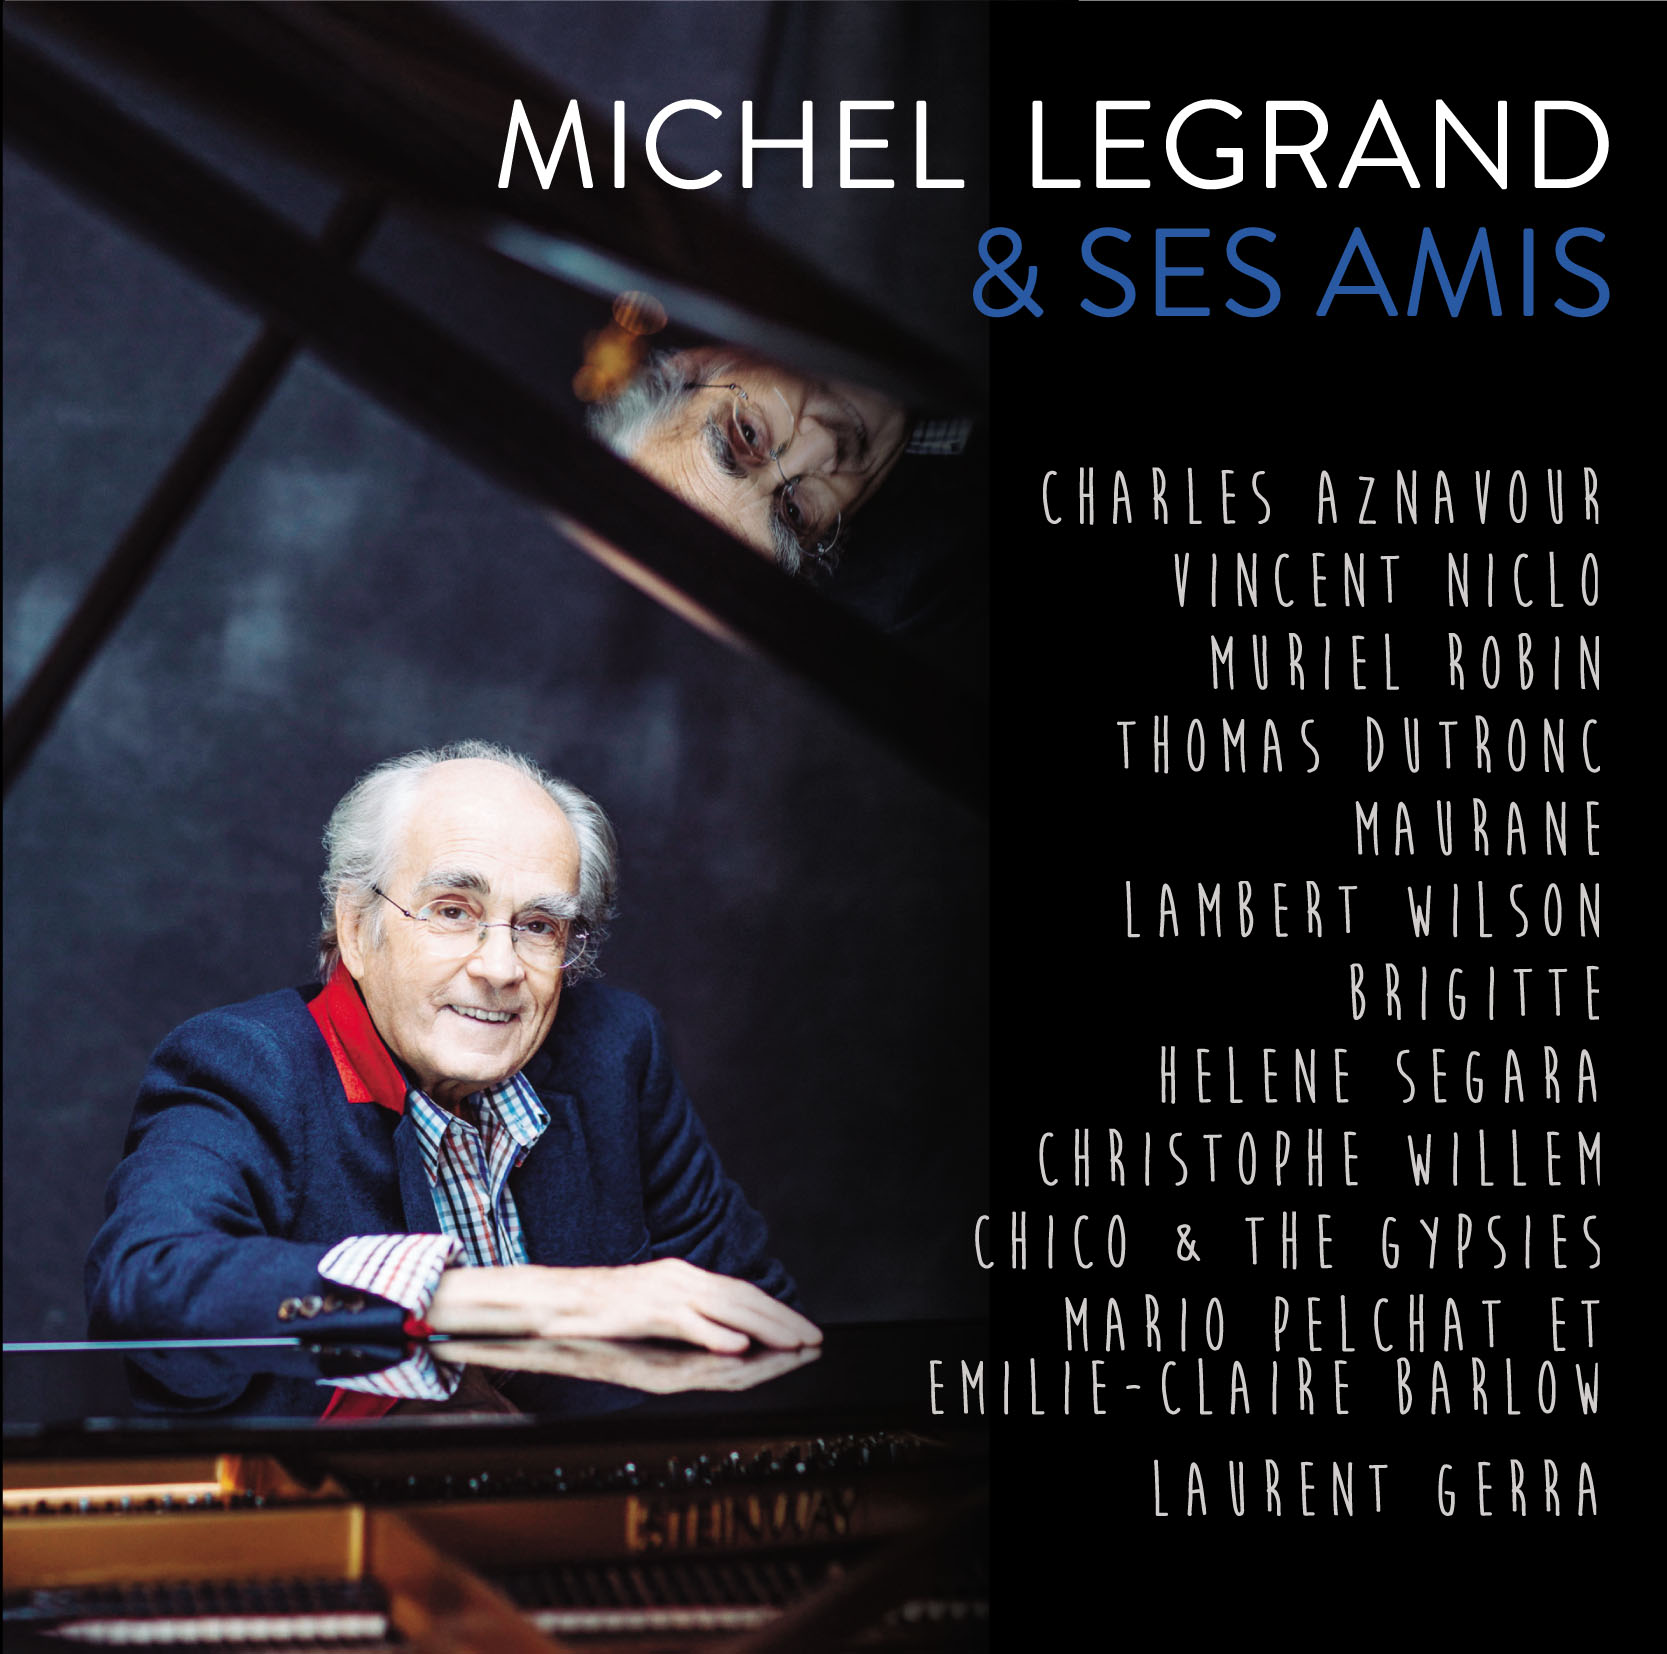 Cover album Michel Legrand & ses amis